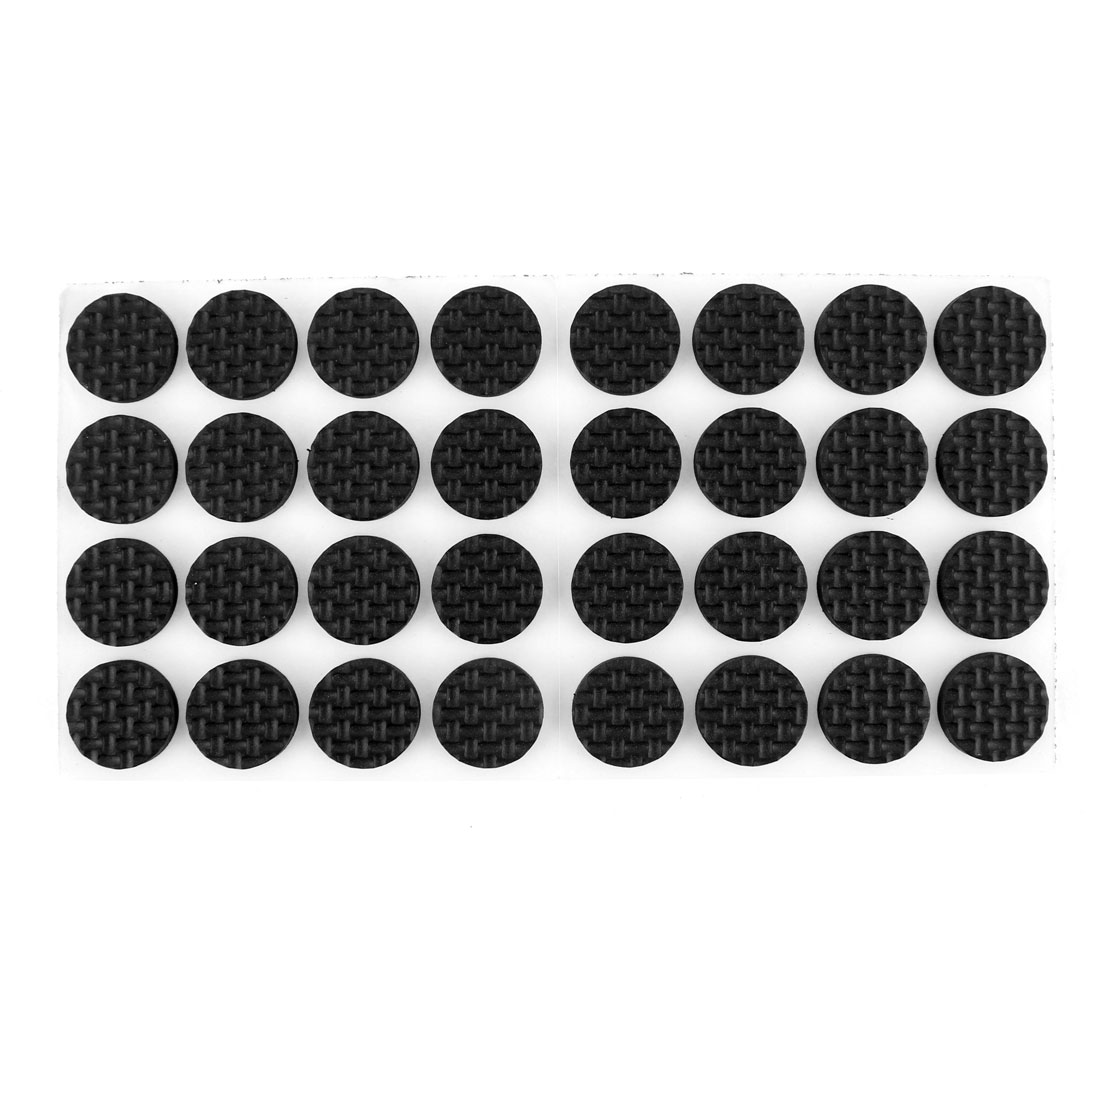 Self-adhesive Round Shape Furniture Protection Cushion Pads Mat 32pcs